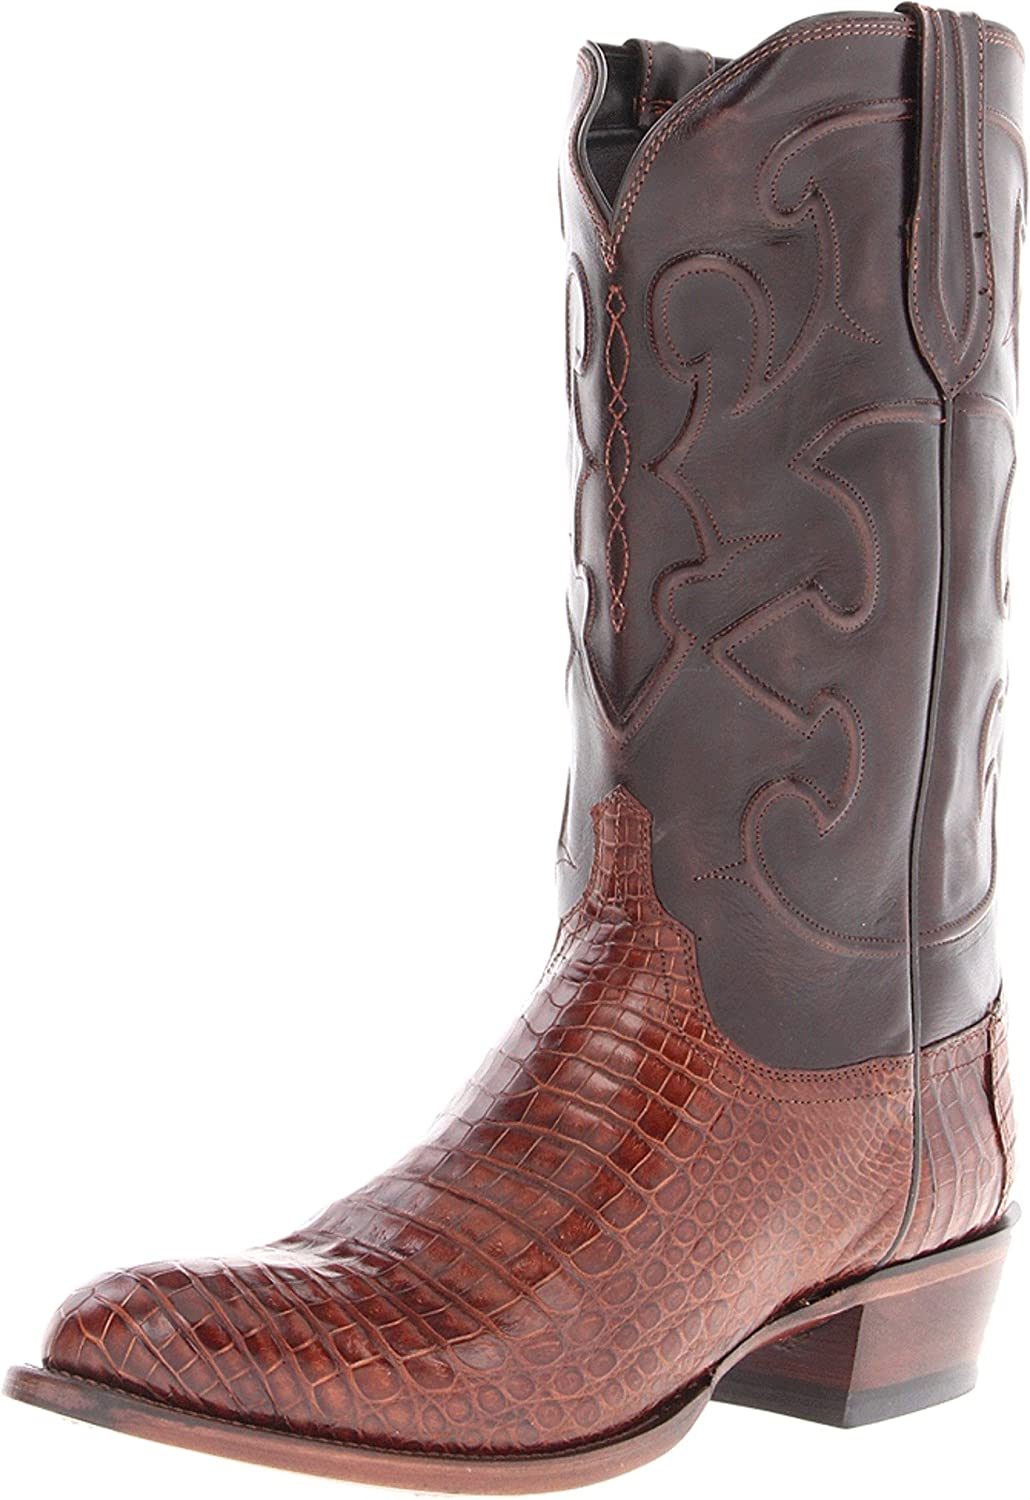 Lucchese Classics Men's National products Charles-sien Bly Derby Croc dkbrn Beauty products Cal Ri